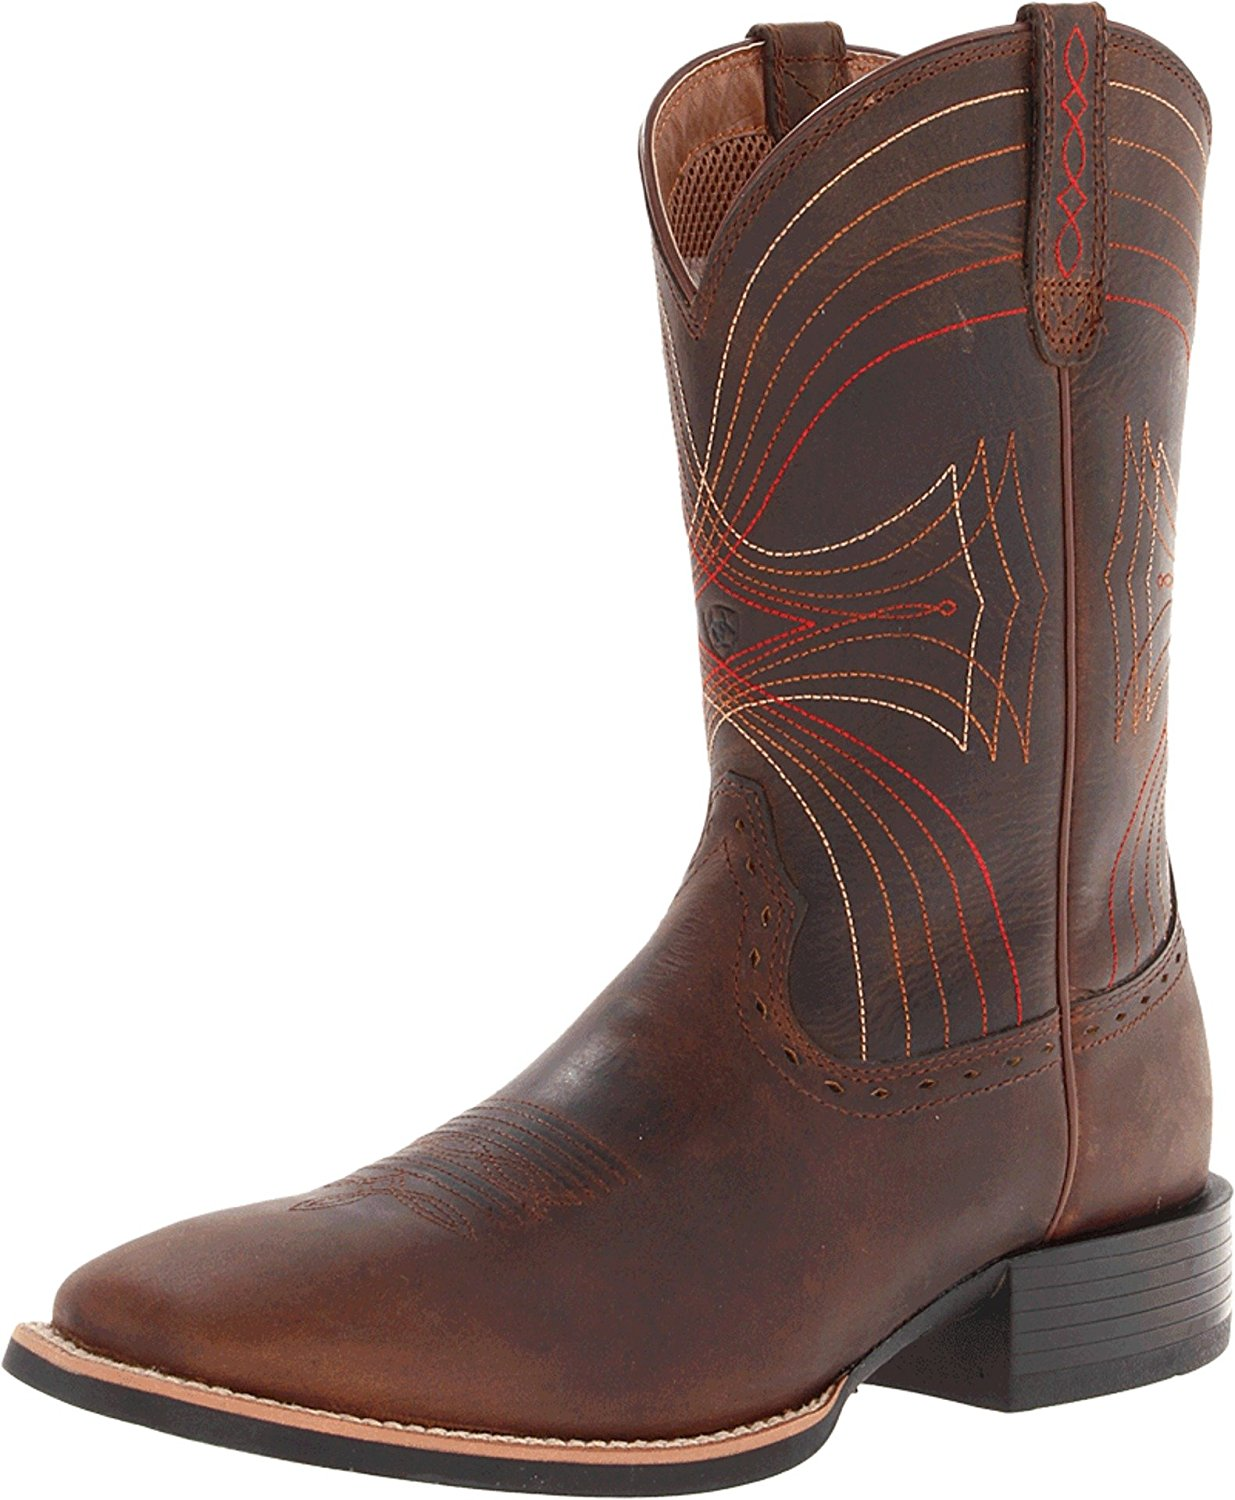 1cf92ef418f Cheap Ariat Cowboy Boots For Men, find Ariat Cowboy Boots For Men ...